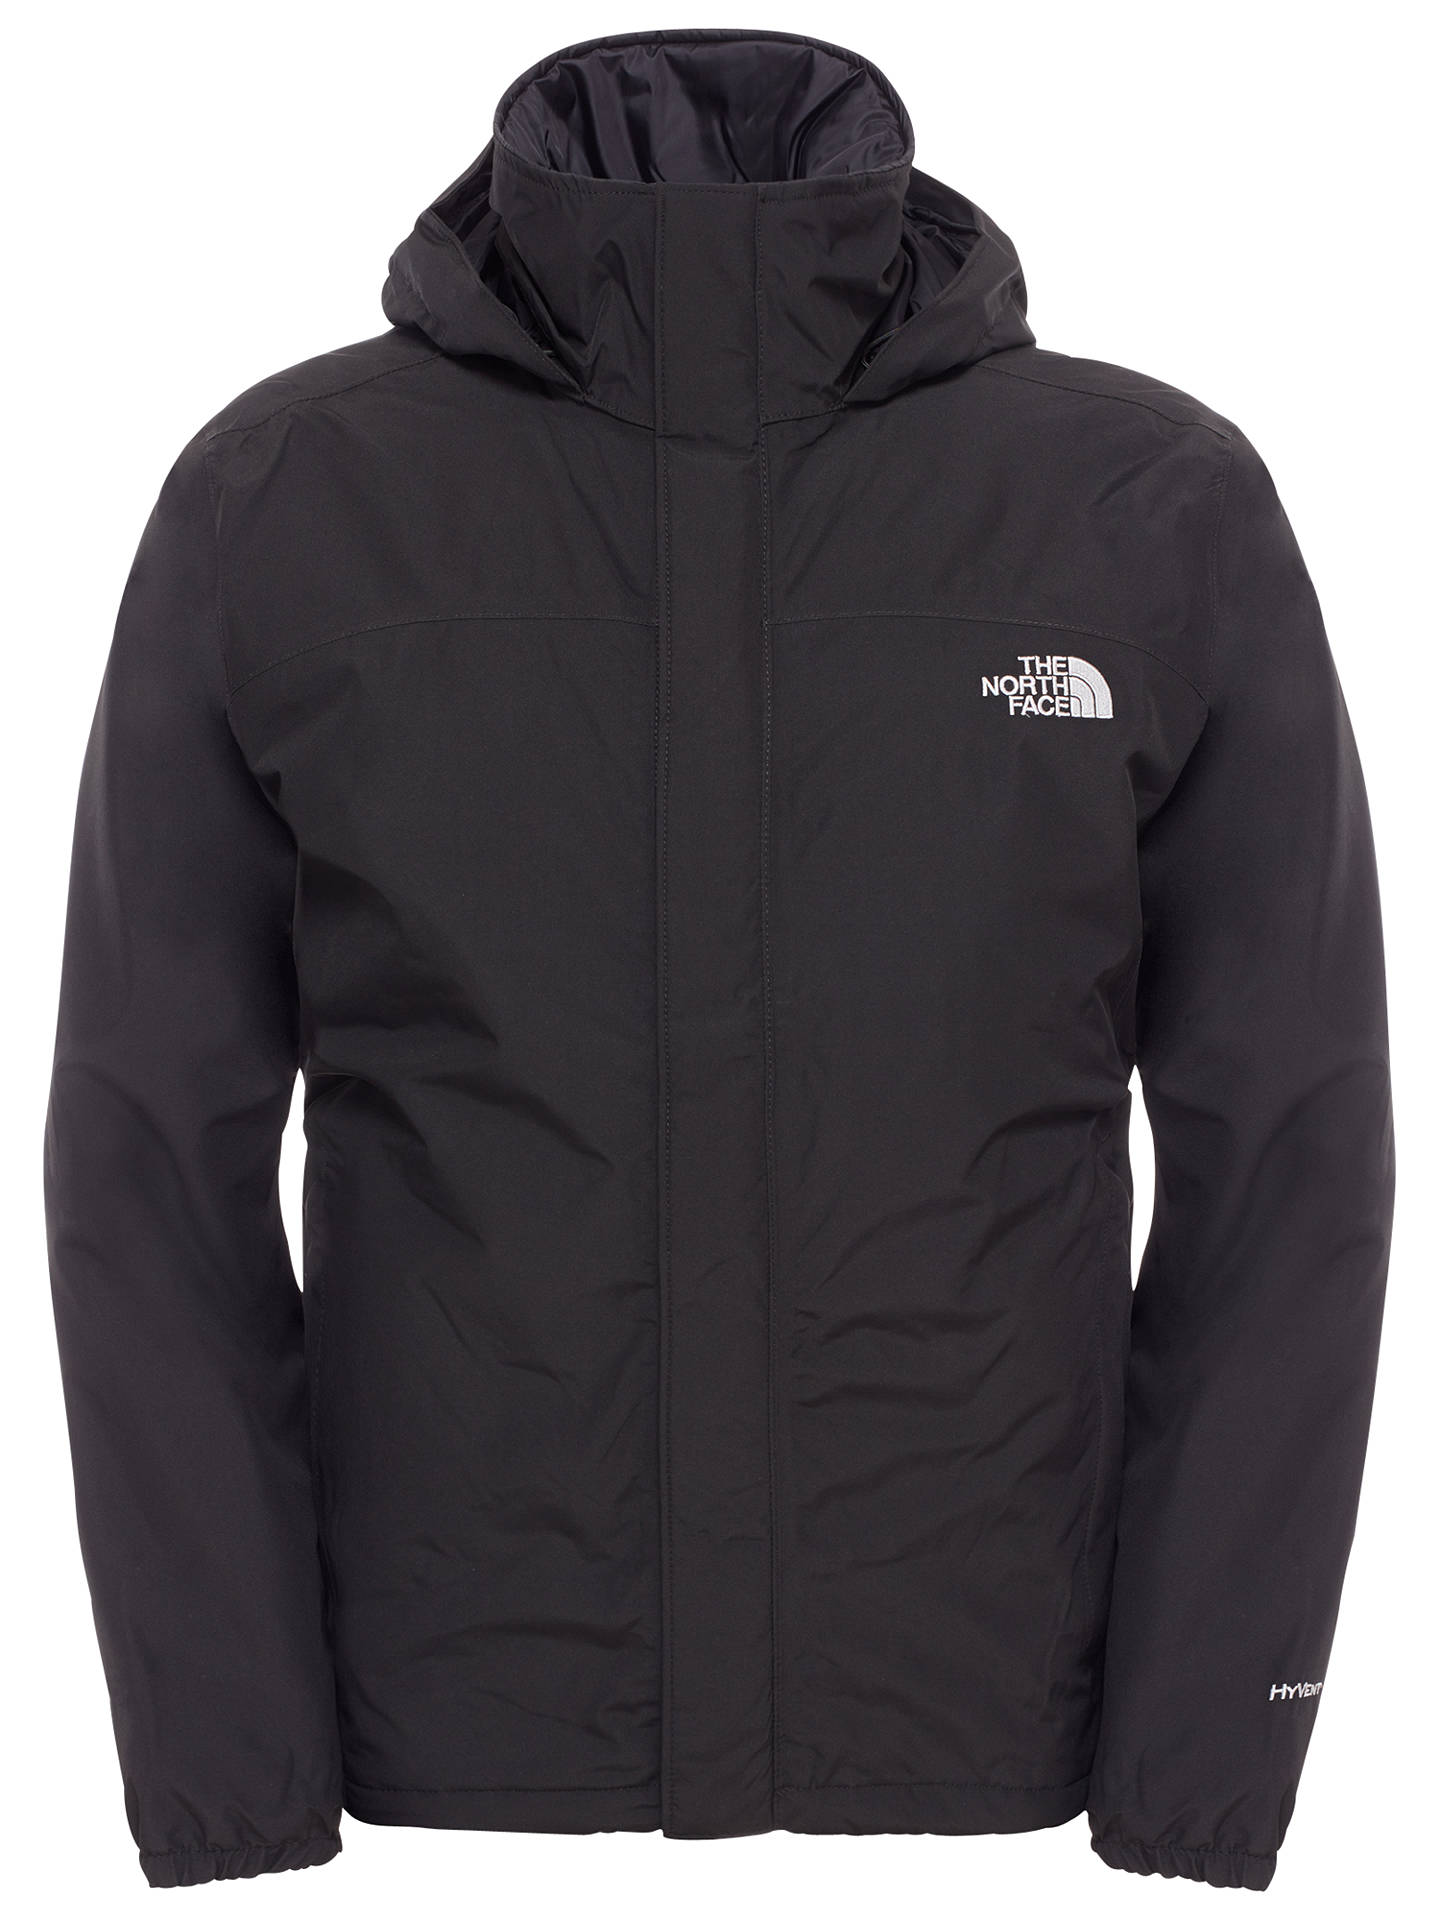 ef6133059b6a ... Buy The North Face Resolve Insulated Waterproof Men s Jacket